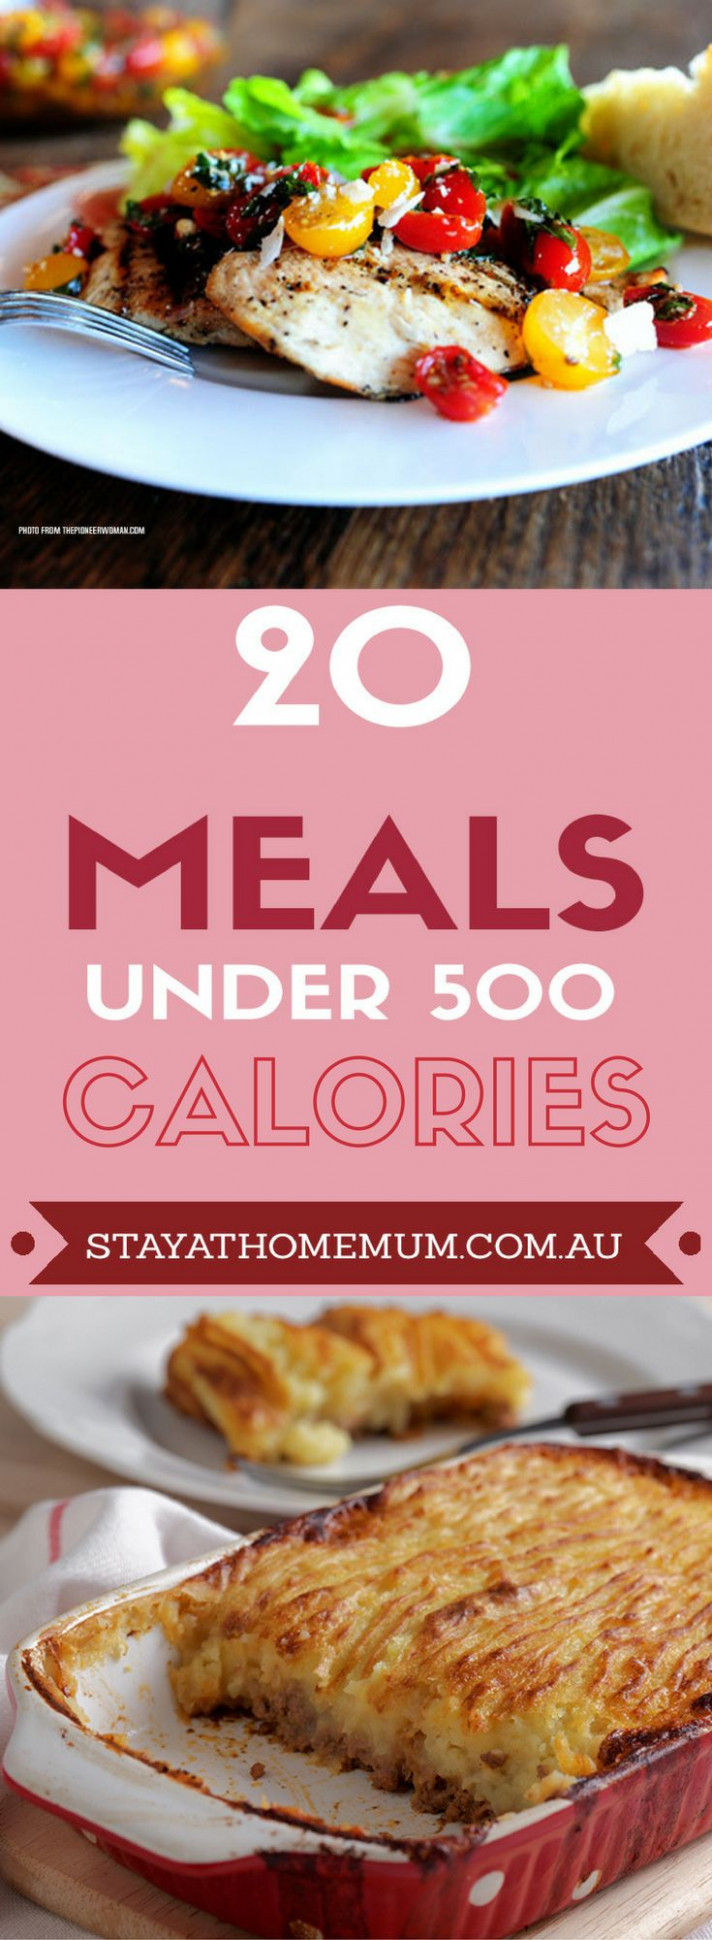 The 25+ best 600 calorie meals ideas on Pinterest | 600 ..